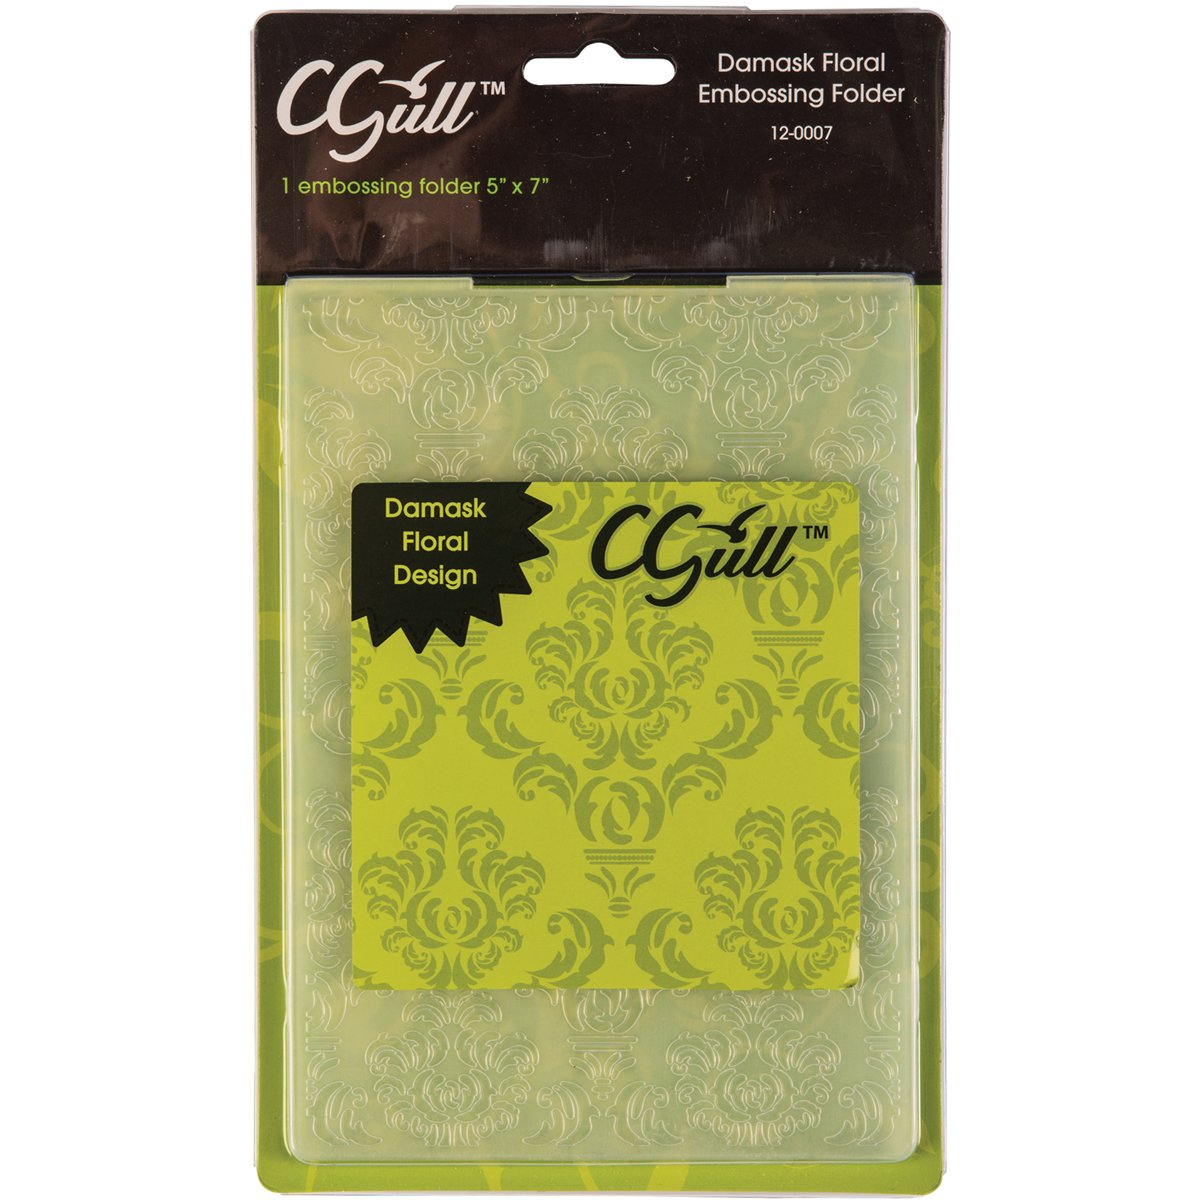 C-Gull Embossing Damask Floral Folder, 5x7-Inch 12-0007